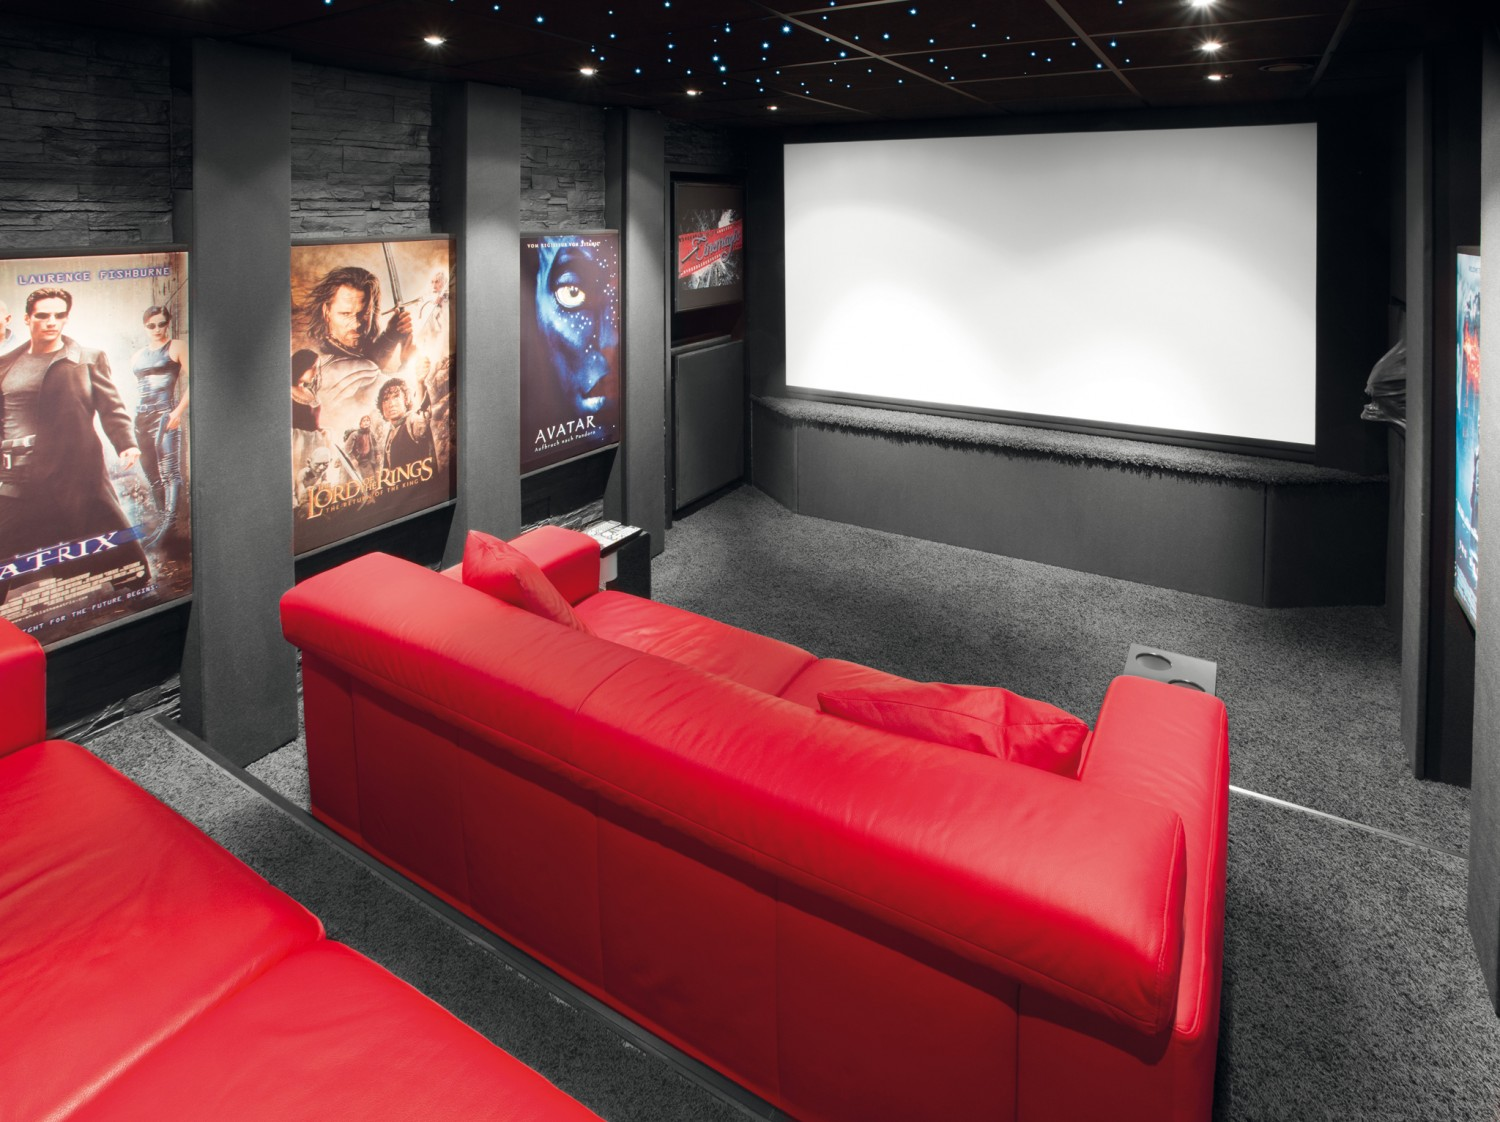 Heimkino LESERKINO (11) Cinemagic - High-End-Kellerkino mit exzellentem Klang  - News, Bild 1